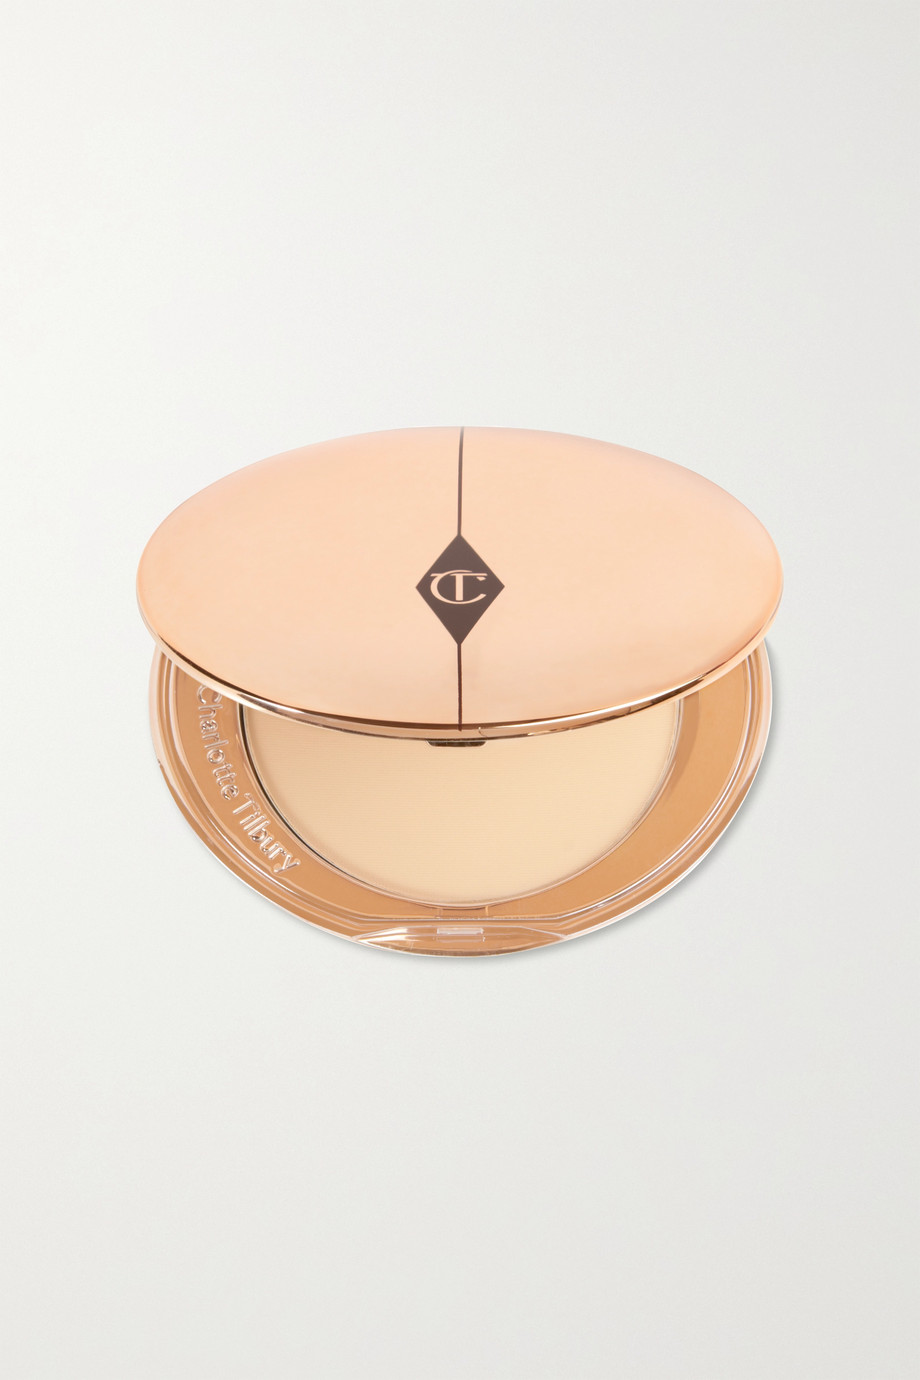 Charlotte Tilbury Airbrush Flawless Finish Micro-Powder - 2 Medium